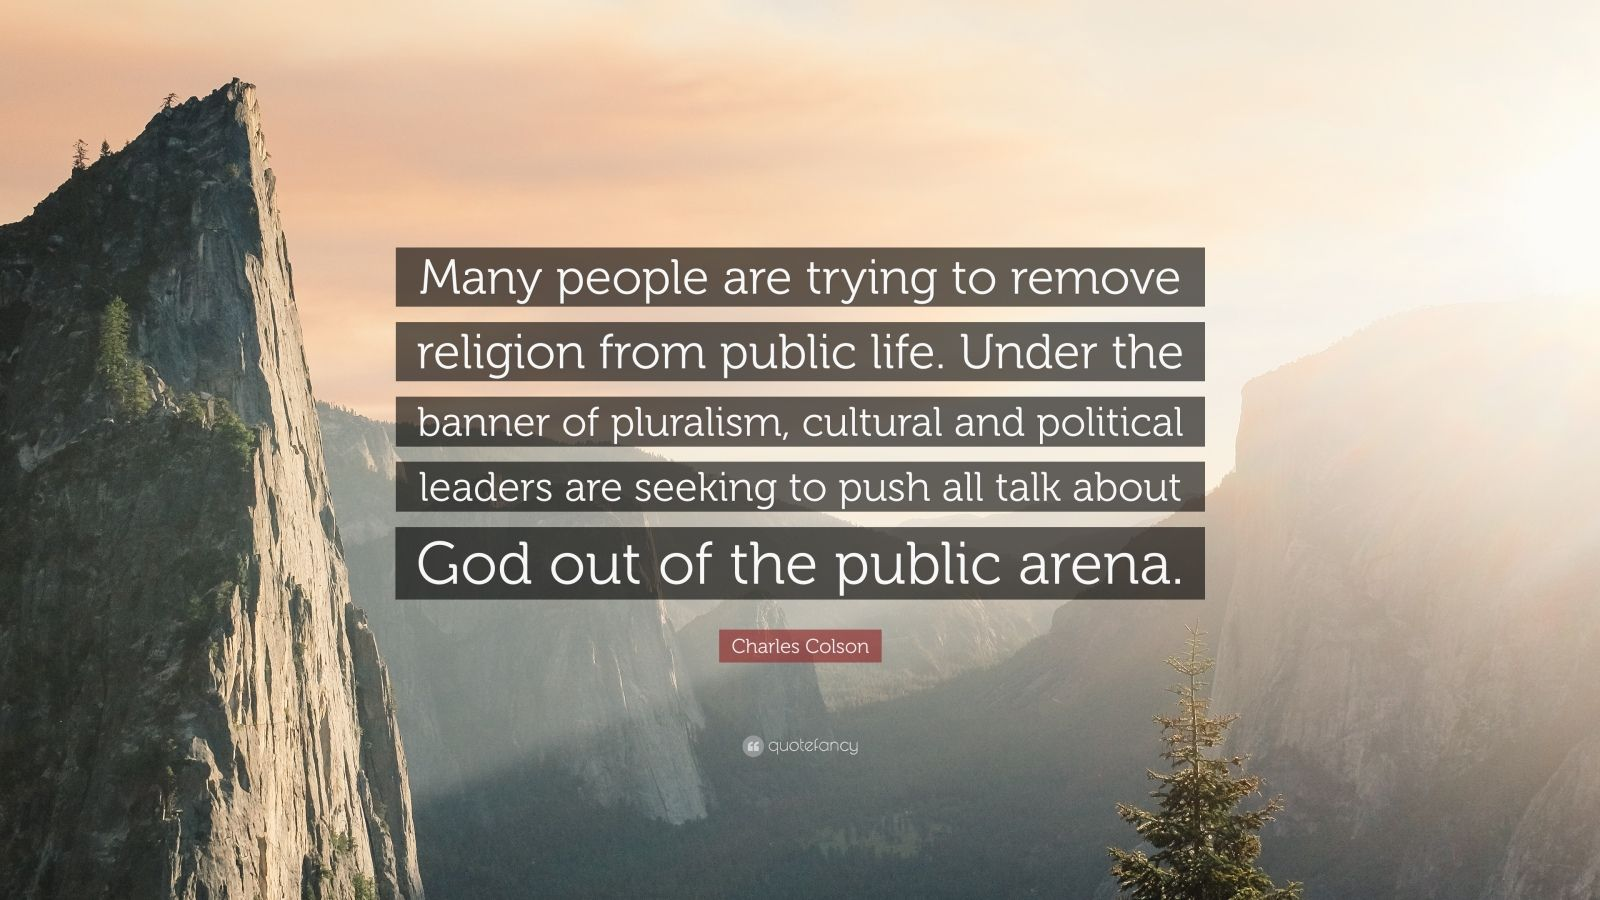 """Charles Colson Quote: """"Many people are trying to remove religion from public life. Under the banner of pluralism, cultural and political leaders are seeking to push all talk about God out of the public arena."""""""